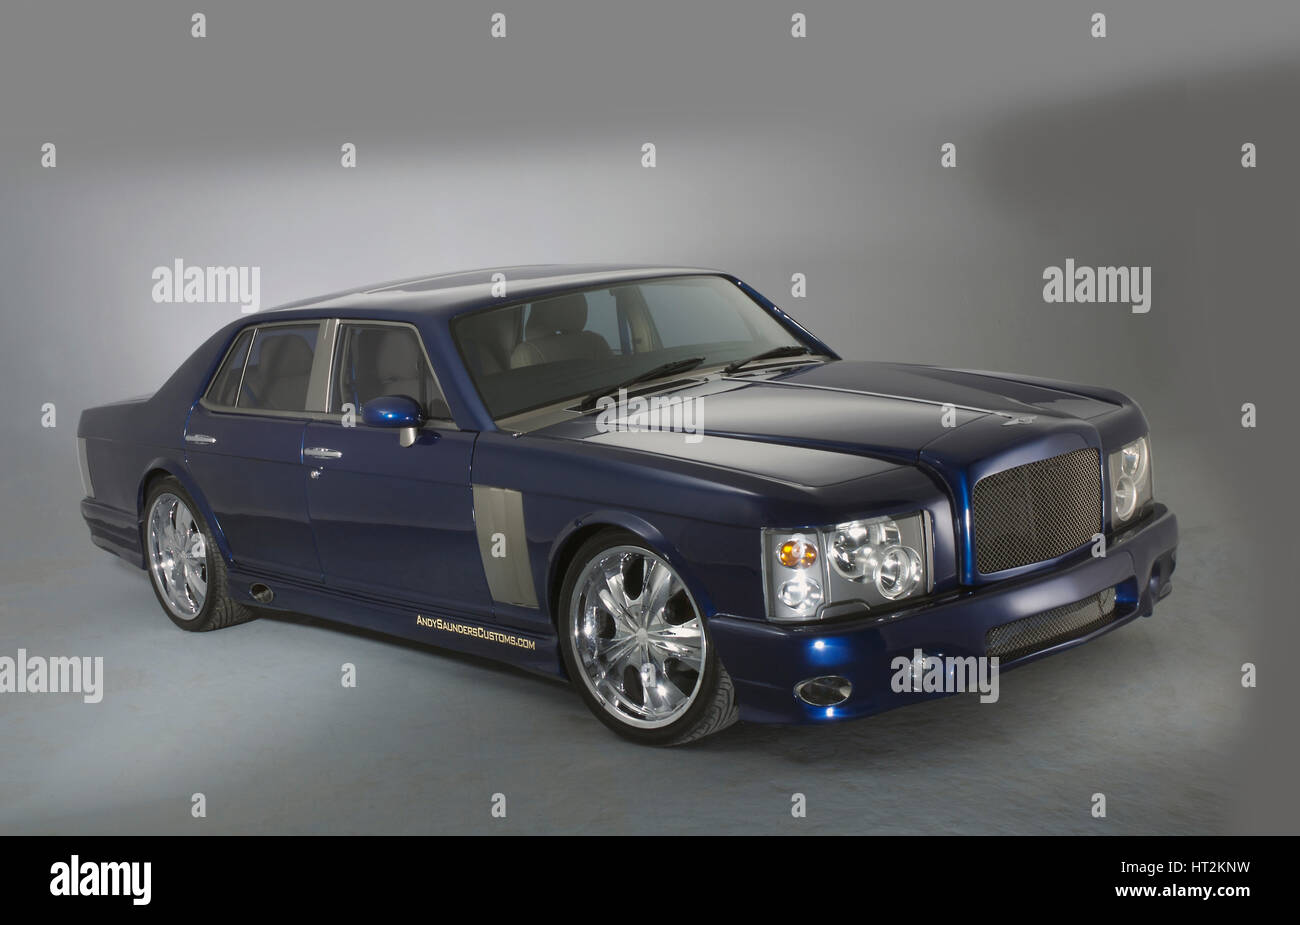 1983 Bentley Mulsanne - Mentley Insanne Custom Car. Künstler: unbekannt. Stockbild